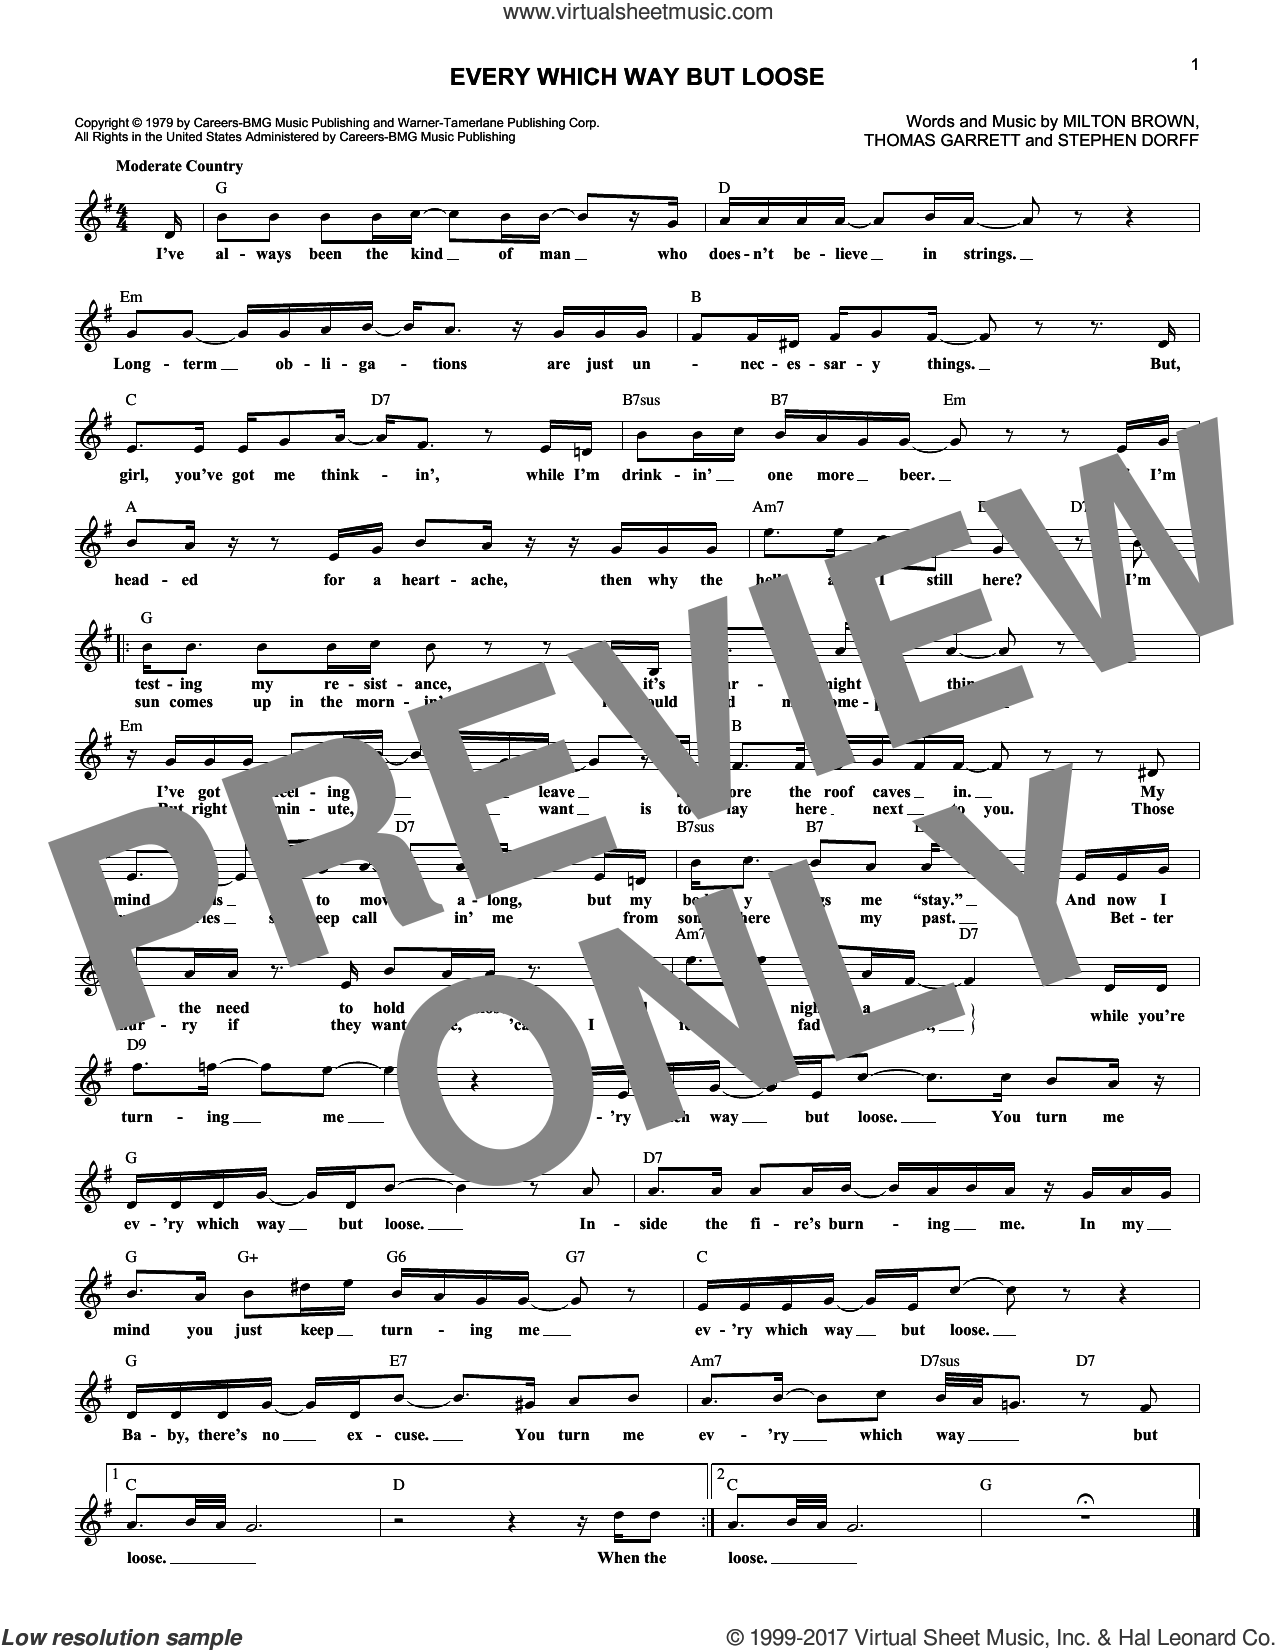 Every Which Way But Loose sheet music for voice and other instruments (fake book) by Eddie Rabbit, Milton Brown, Snuff Garrett and Steve Dorff, intermediate skill level